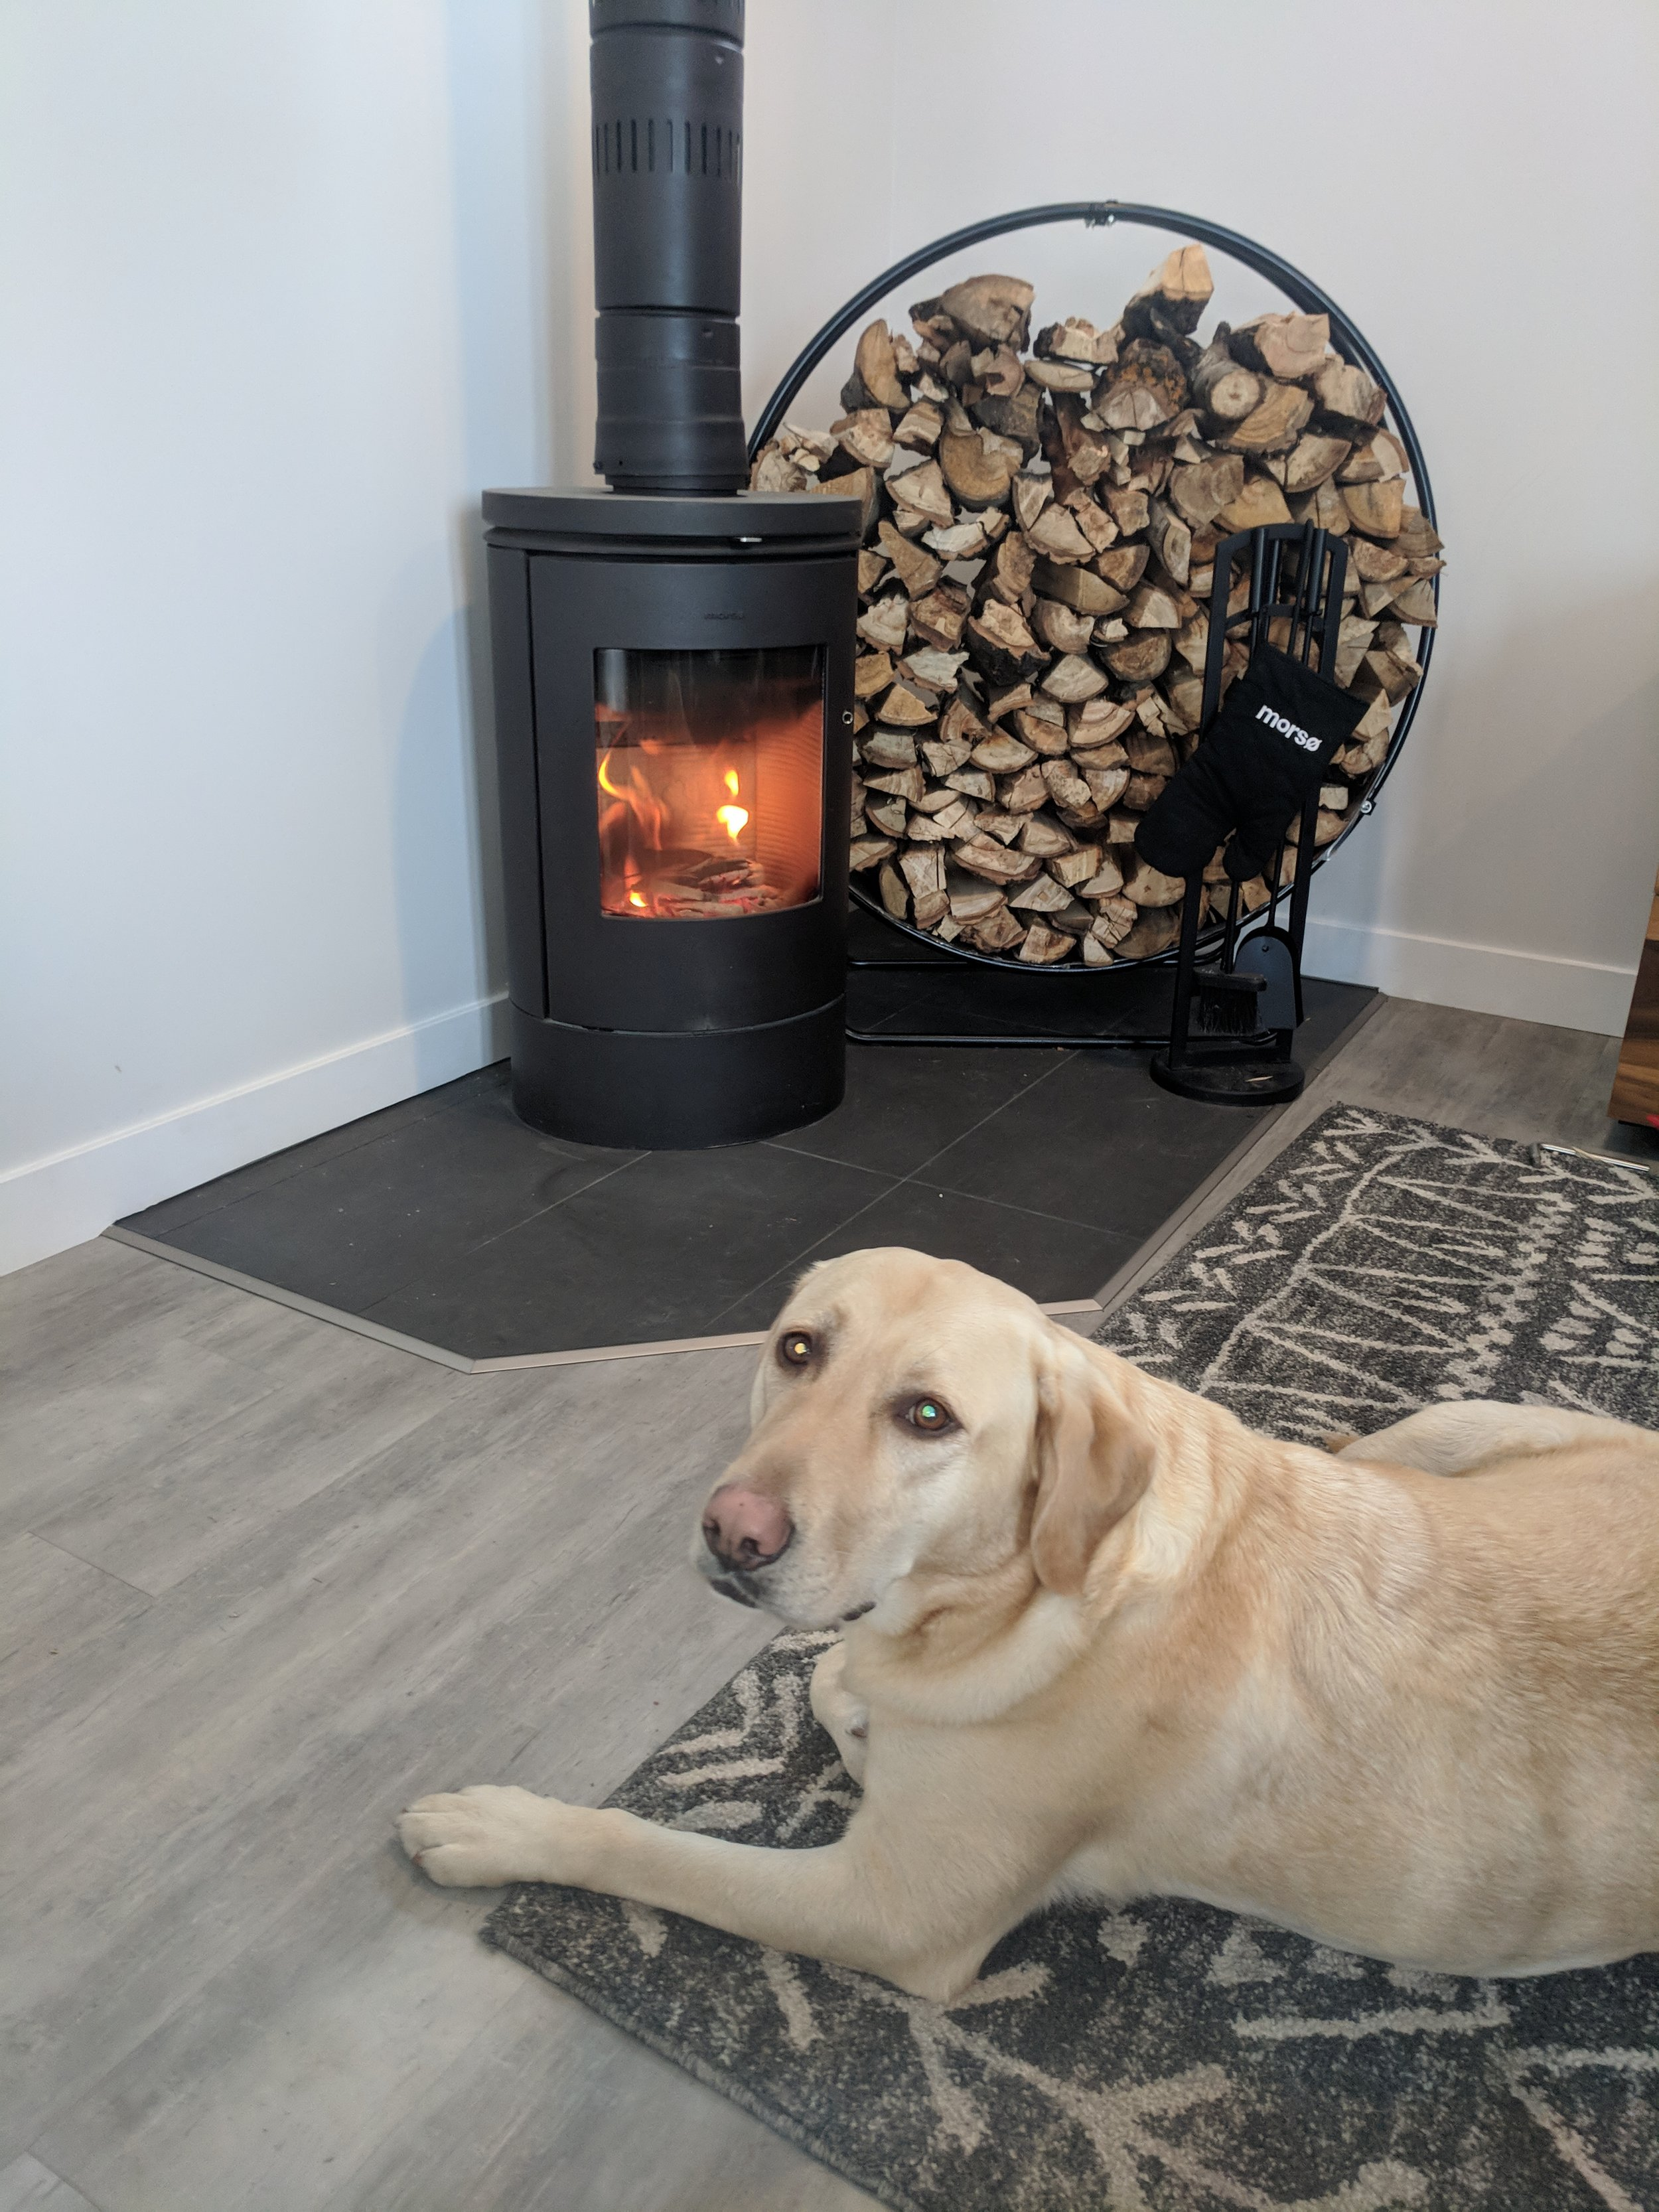 Luna enjoying the heat from our wood stove